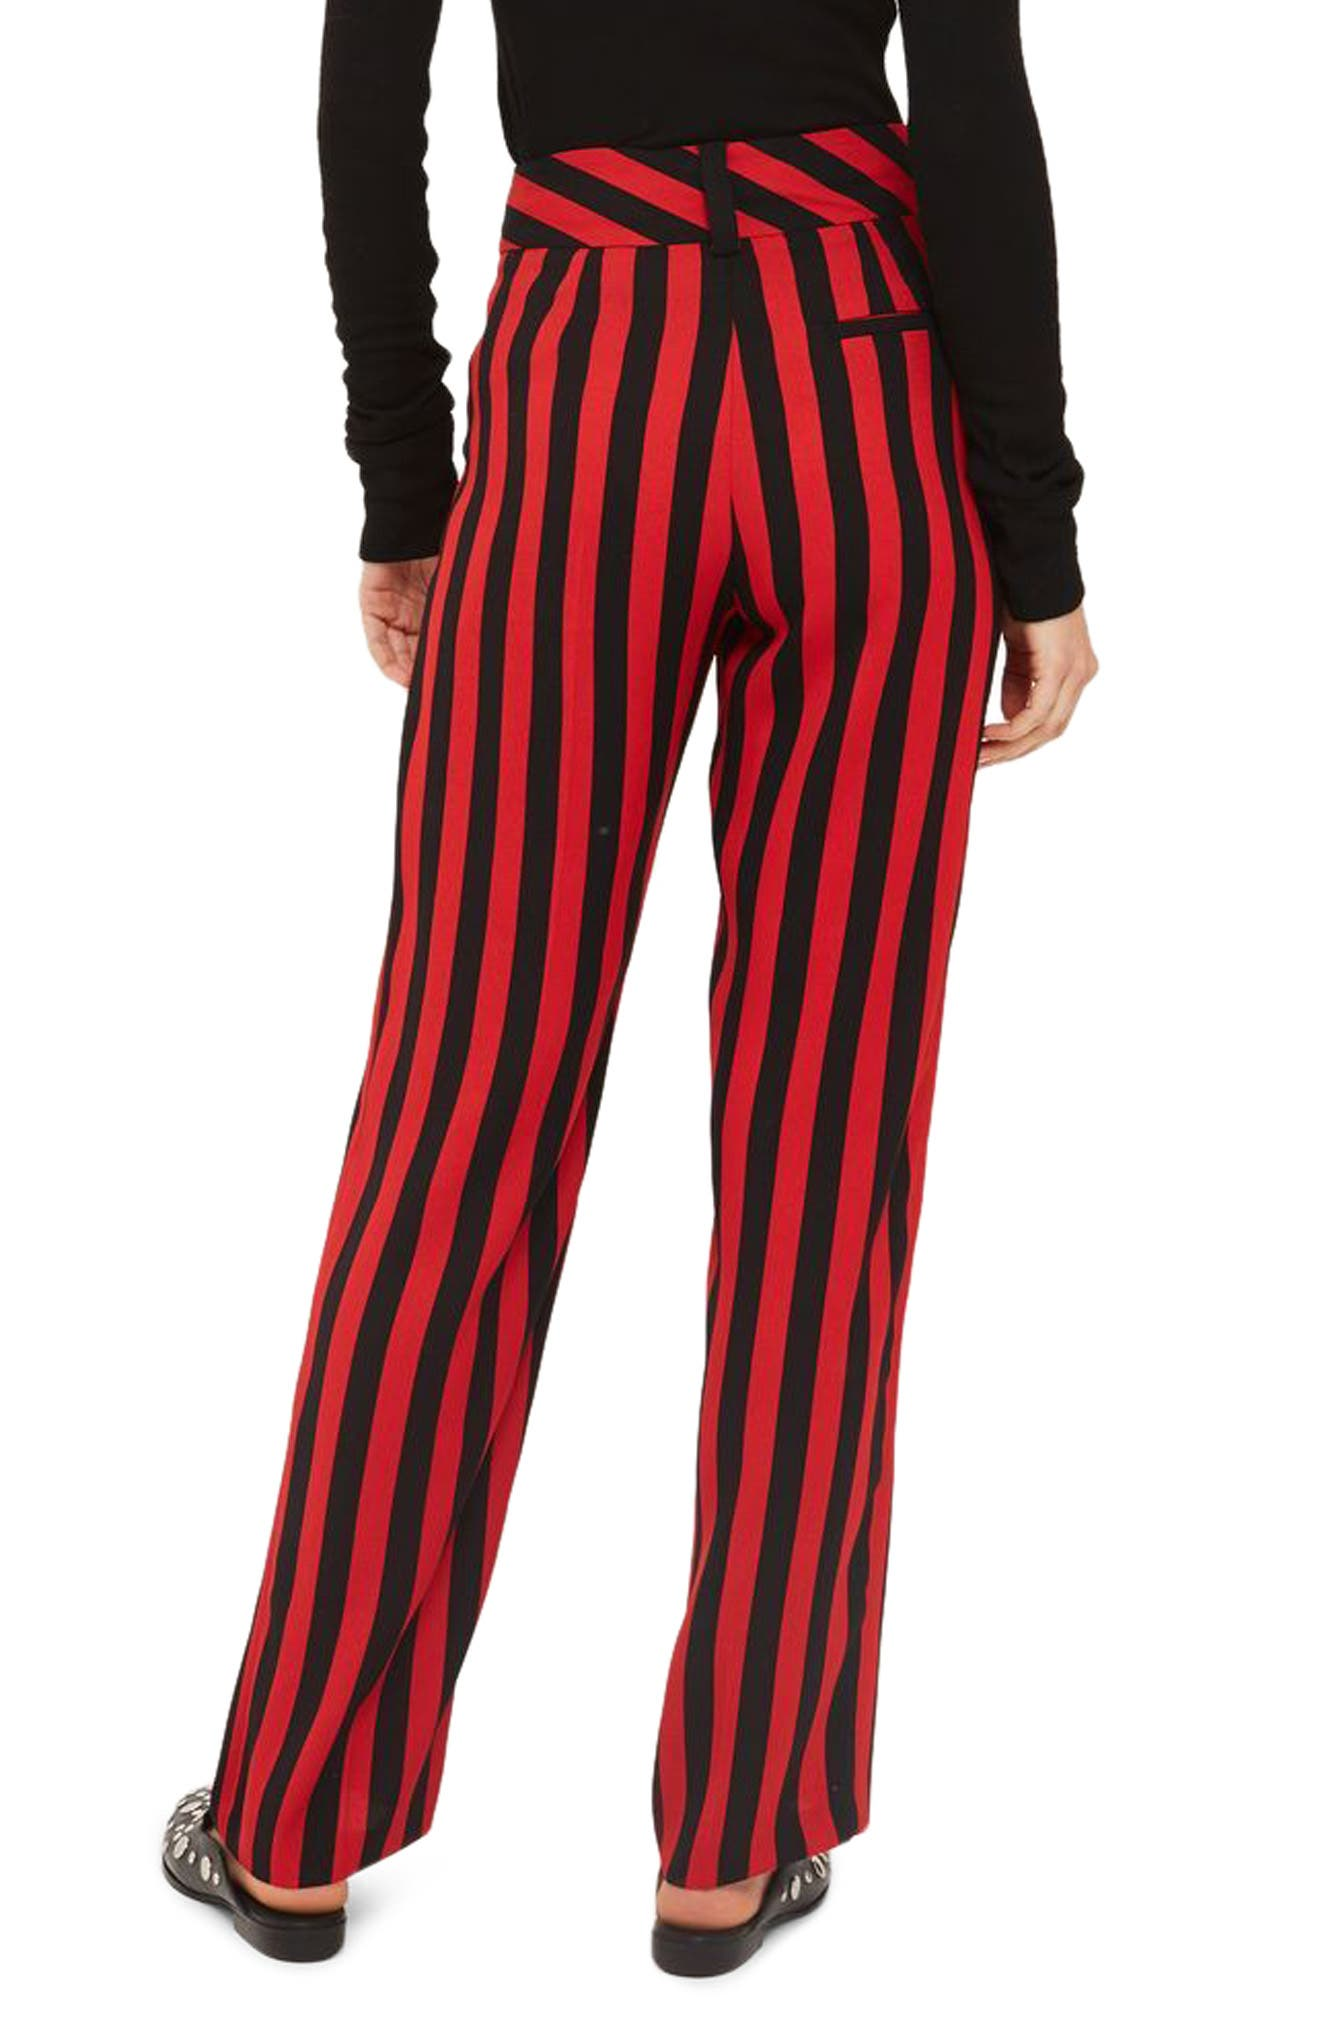 Humbug Stripe Trousers,                             Alternate thumbnail 2, color,                             Red Multi